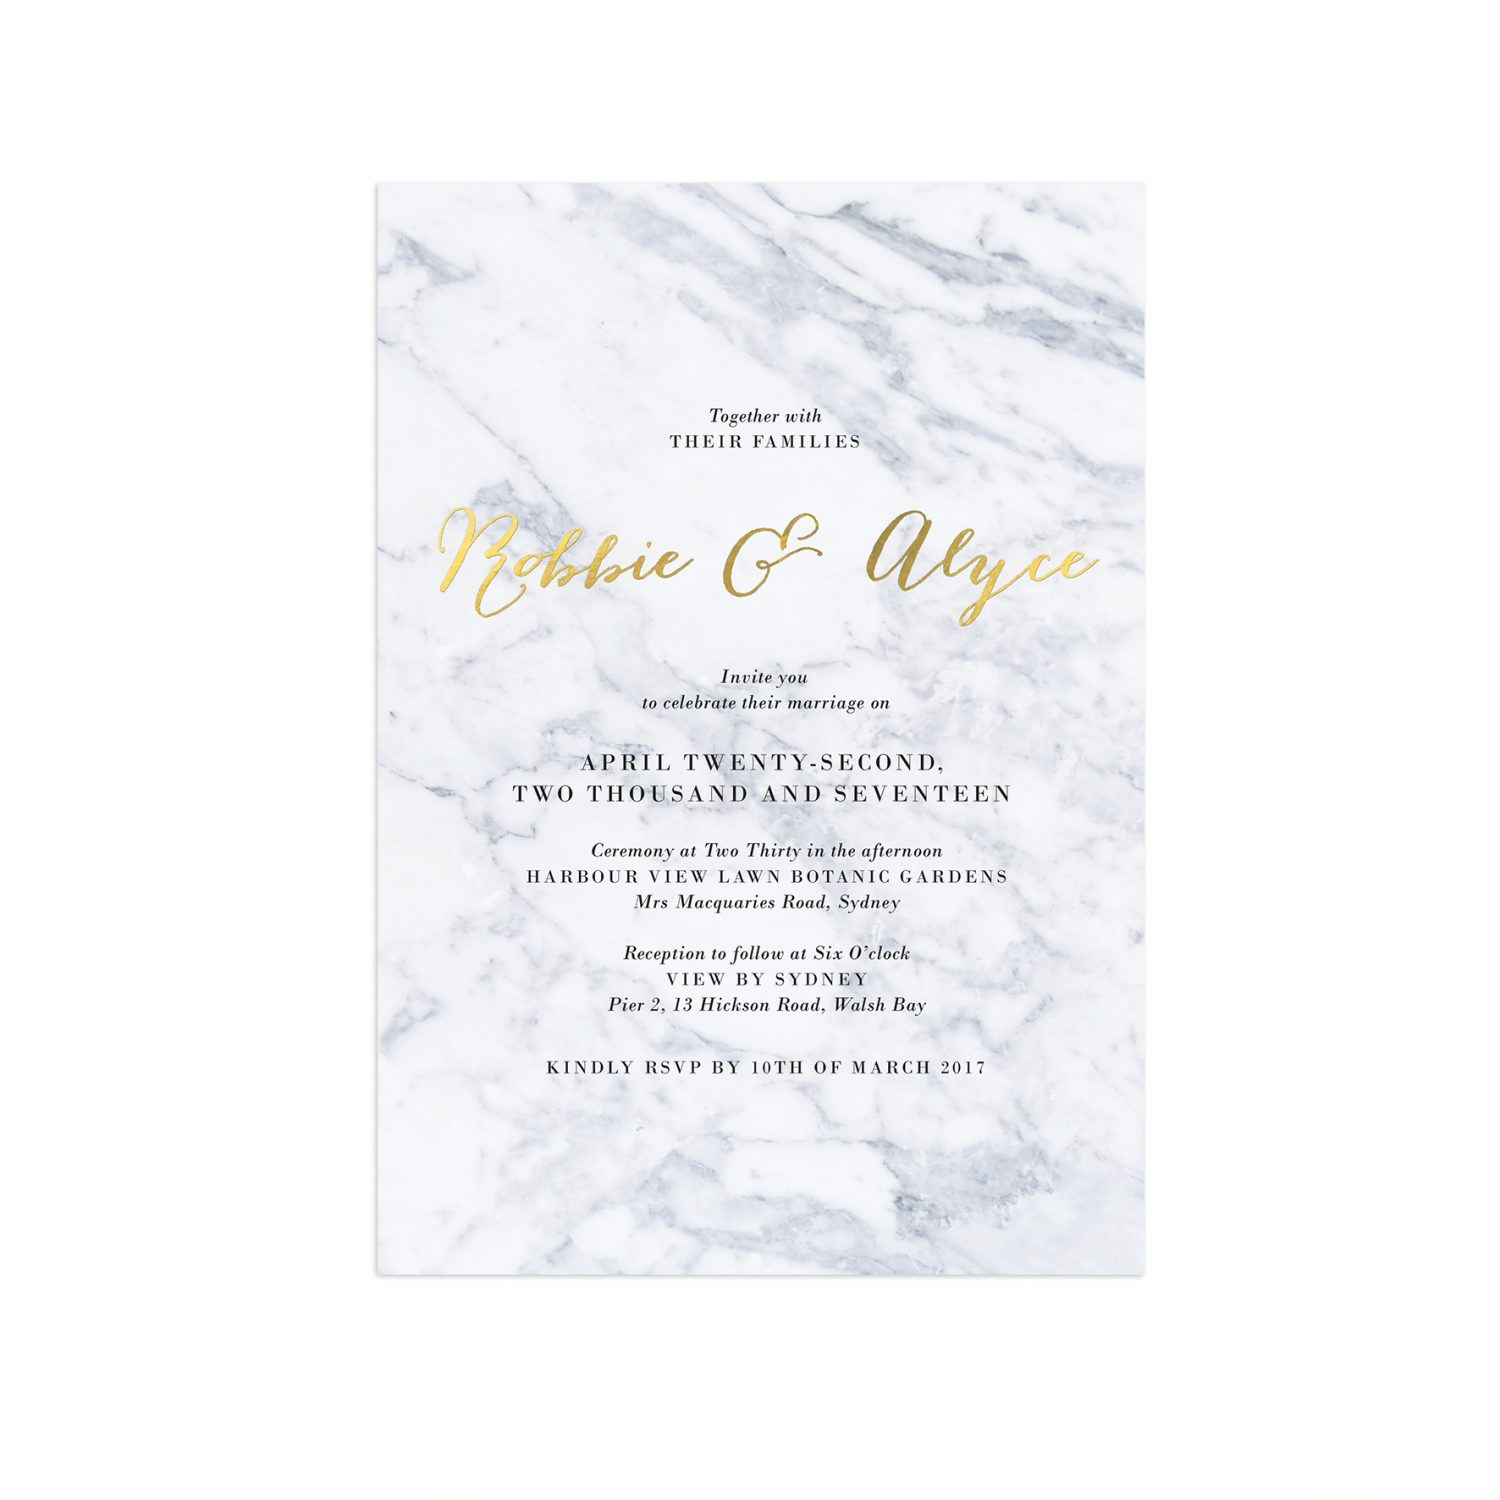 Gold foil marble wedding invitations sail and swan gold foil marble wedding invitations gold marble invitations gold foil marble invites wedding stationery australia perth stopboris Images